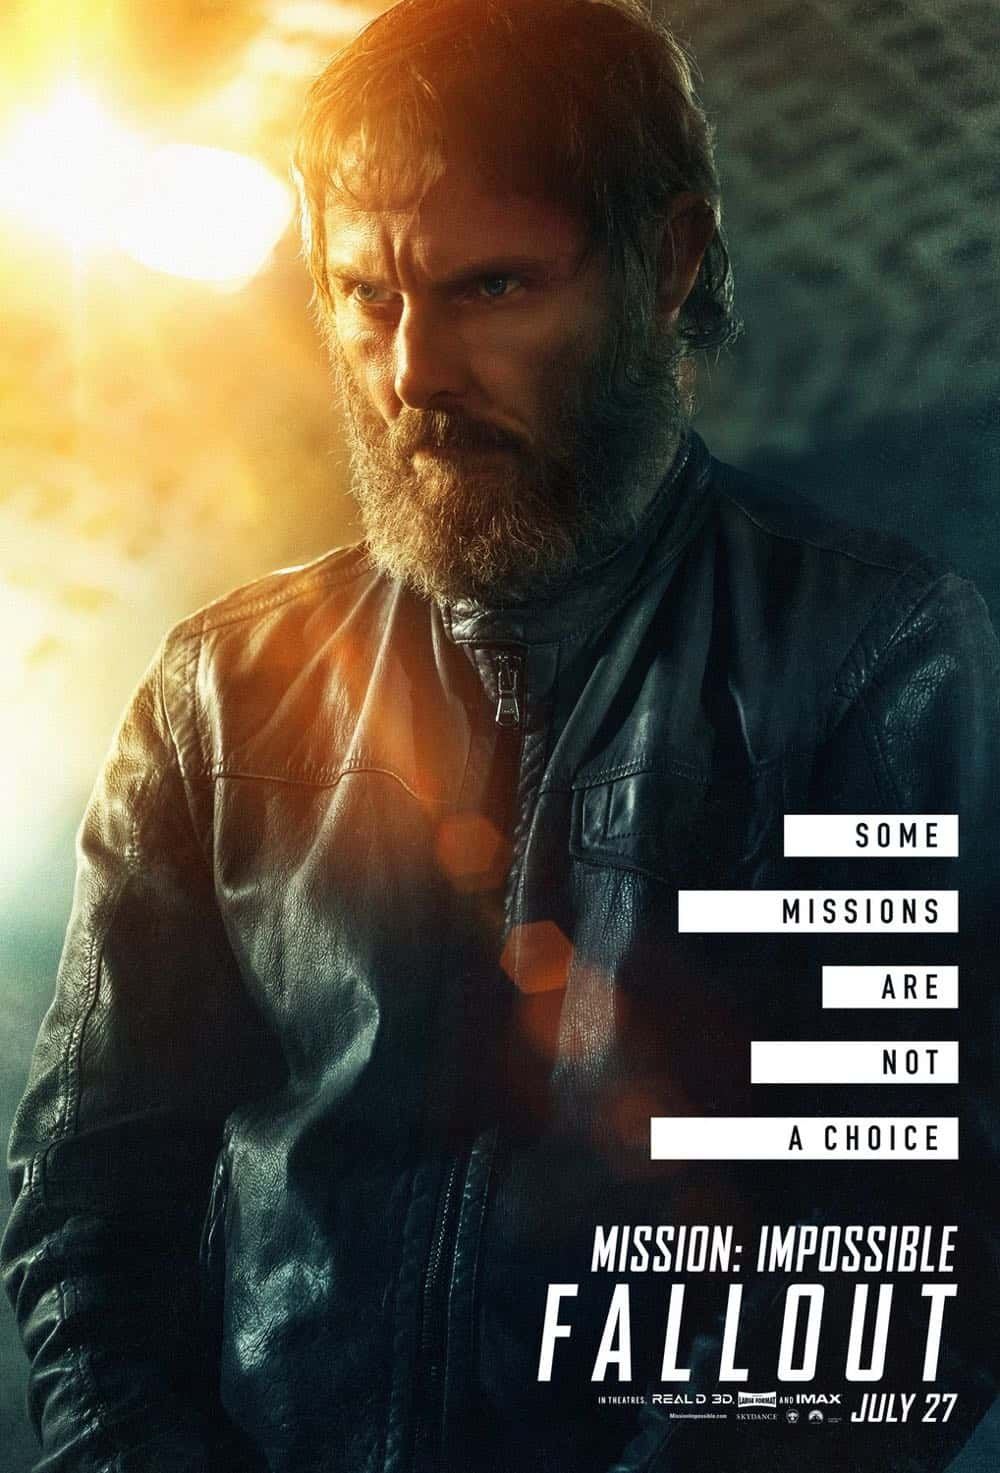 Mission Impossible Fallout Character Movie Poster Sean Harris